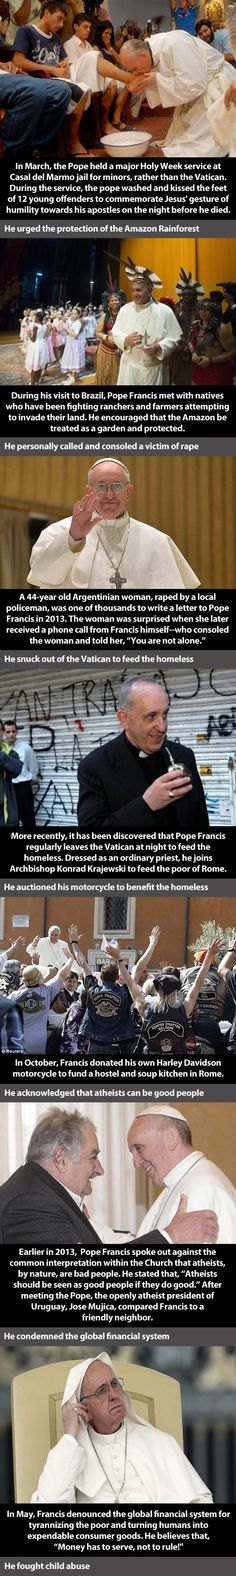 Pope Francis: True hero.